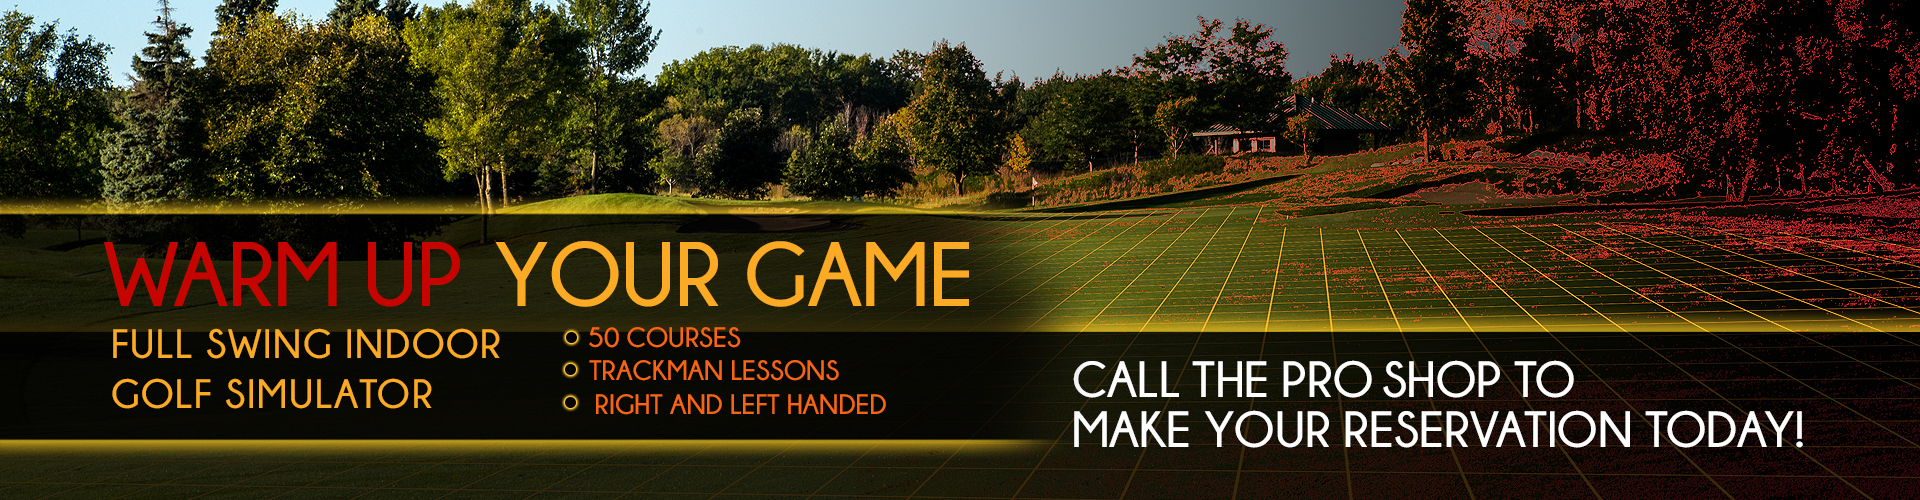 Full swing indoor golf simulator - call the pro shop to make your reservation today!